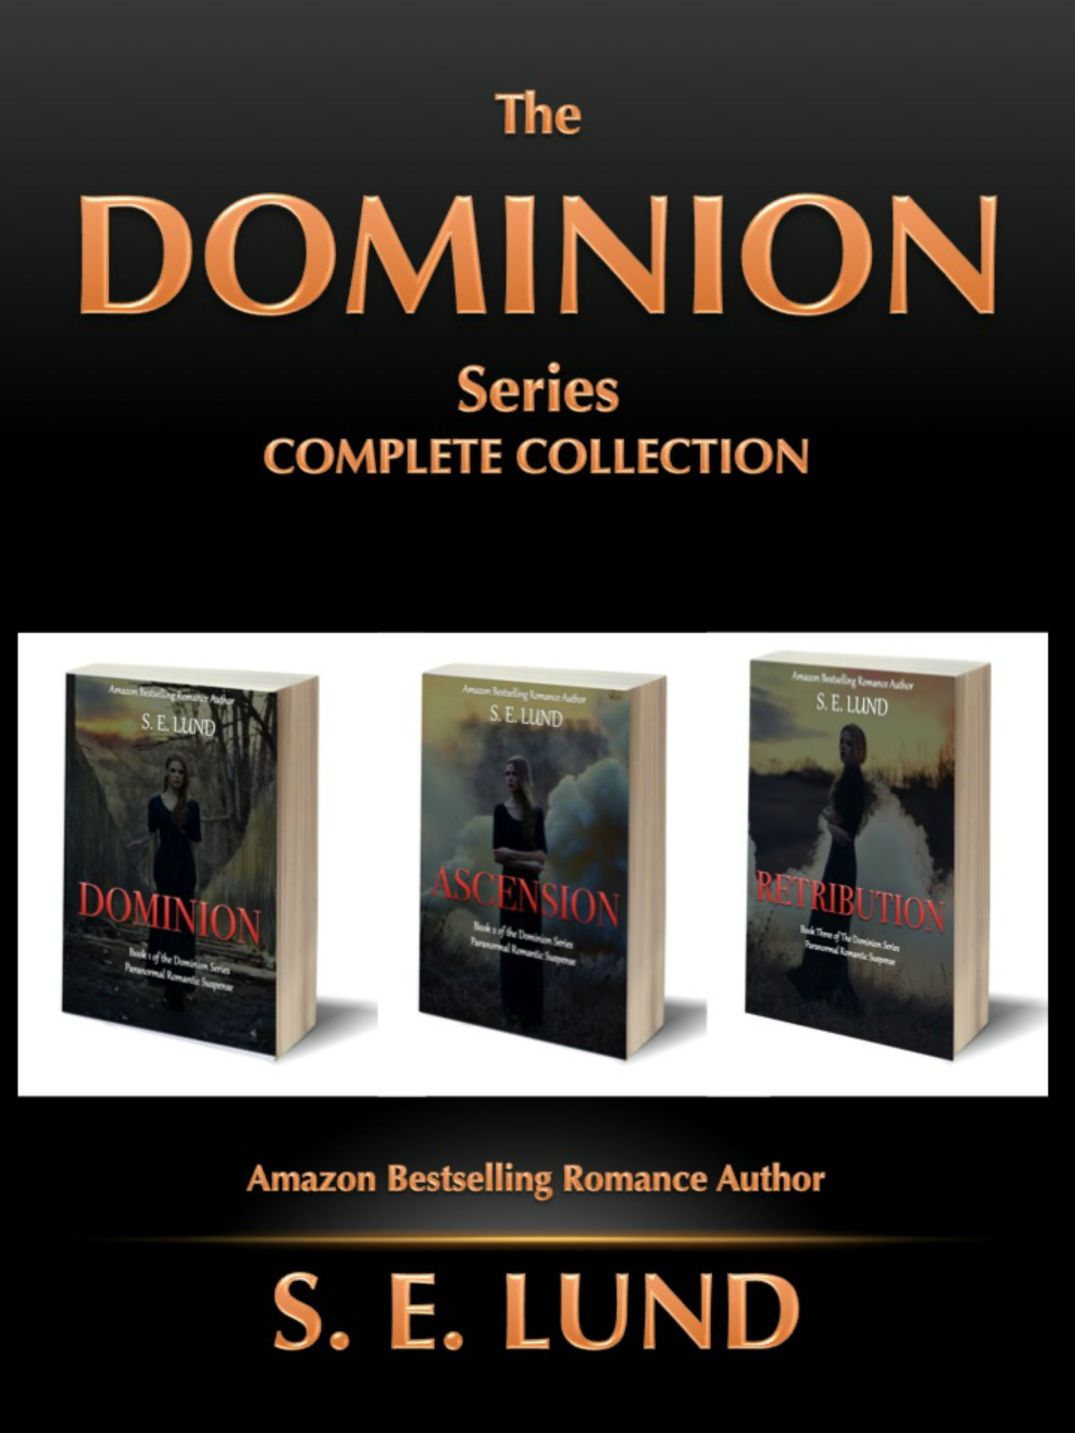 Dominion Collection Sale